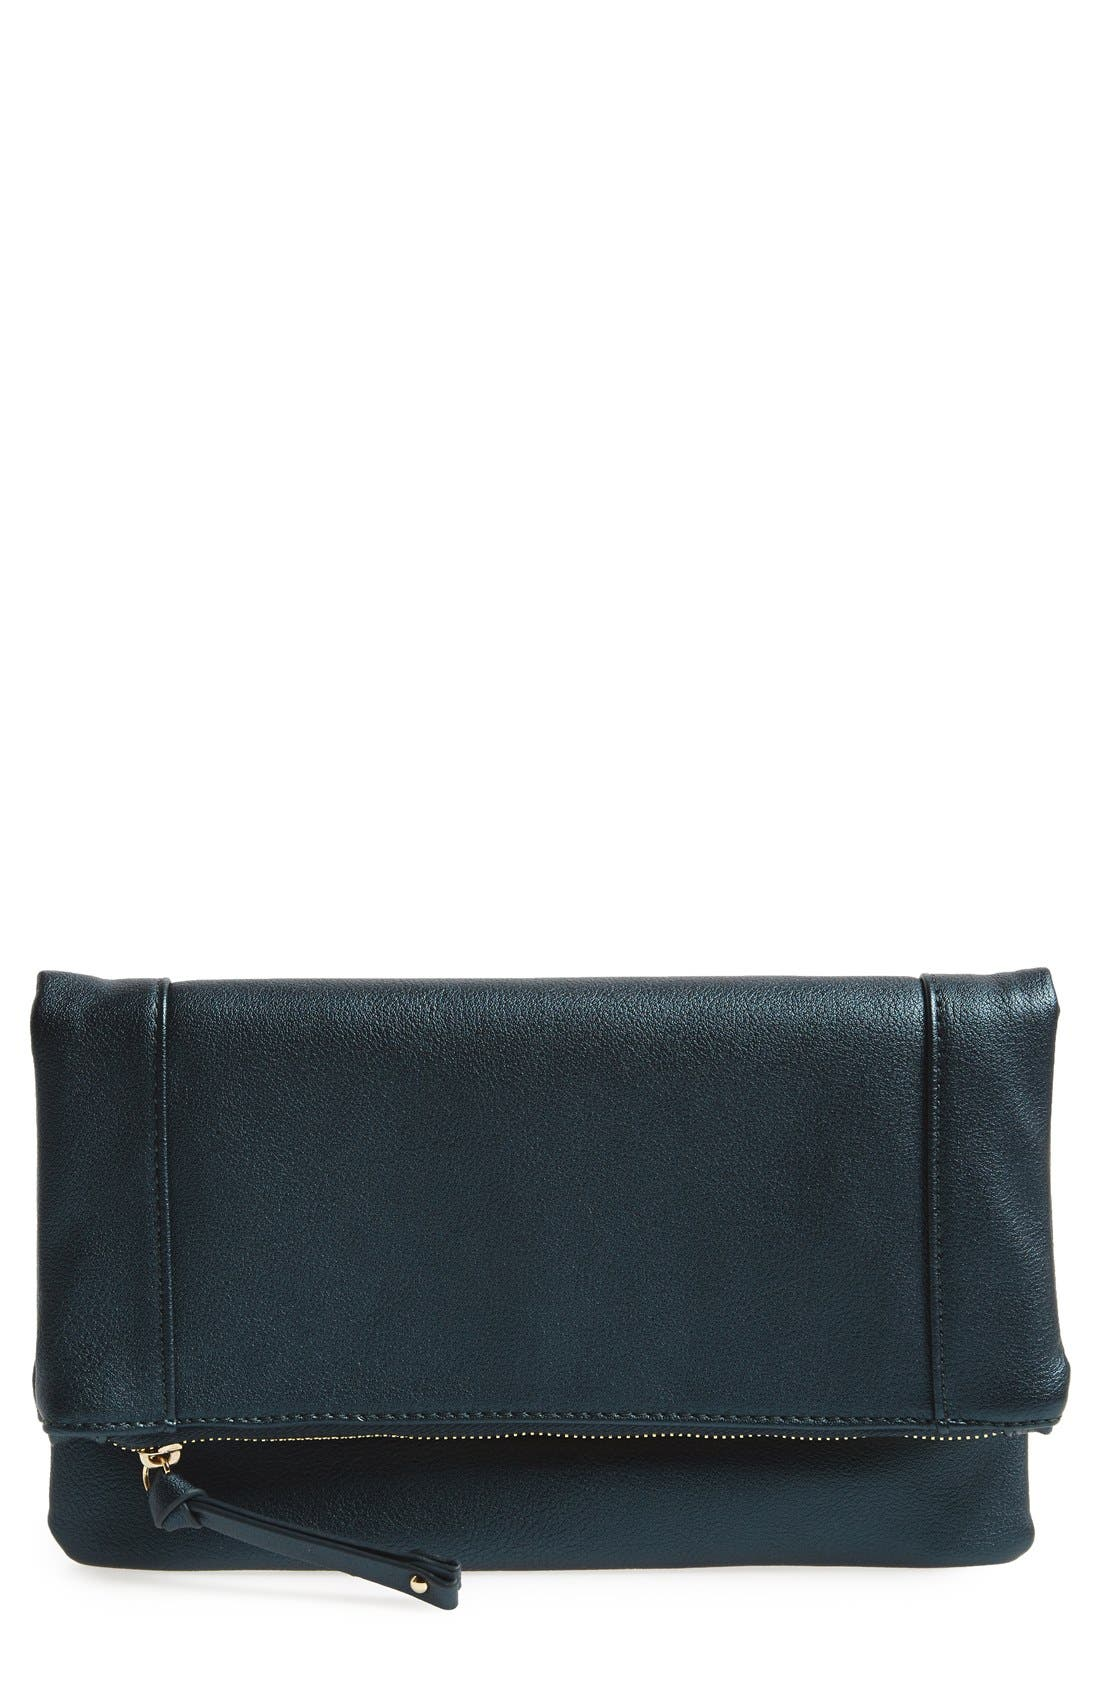 'Marlena' Faux Leather Foldover Clutch,                         Main,                         color, Deep Teal